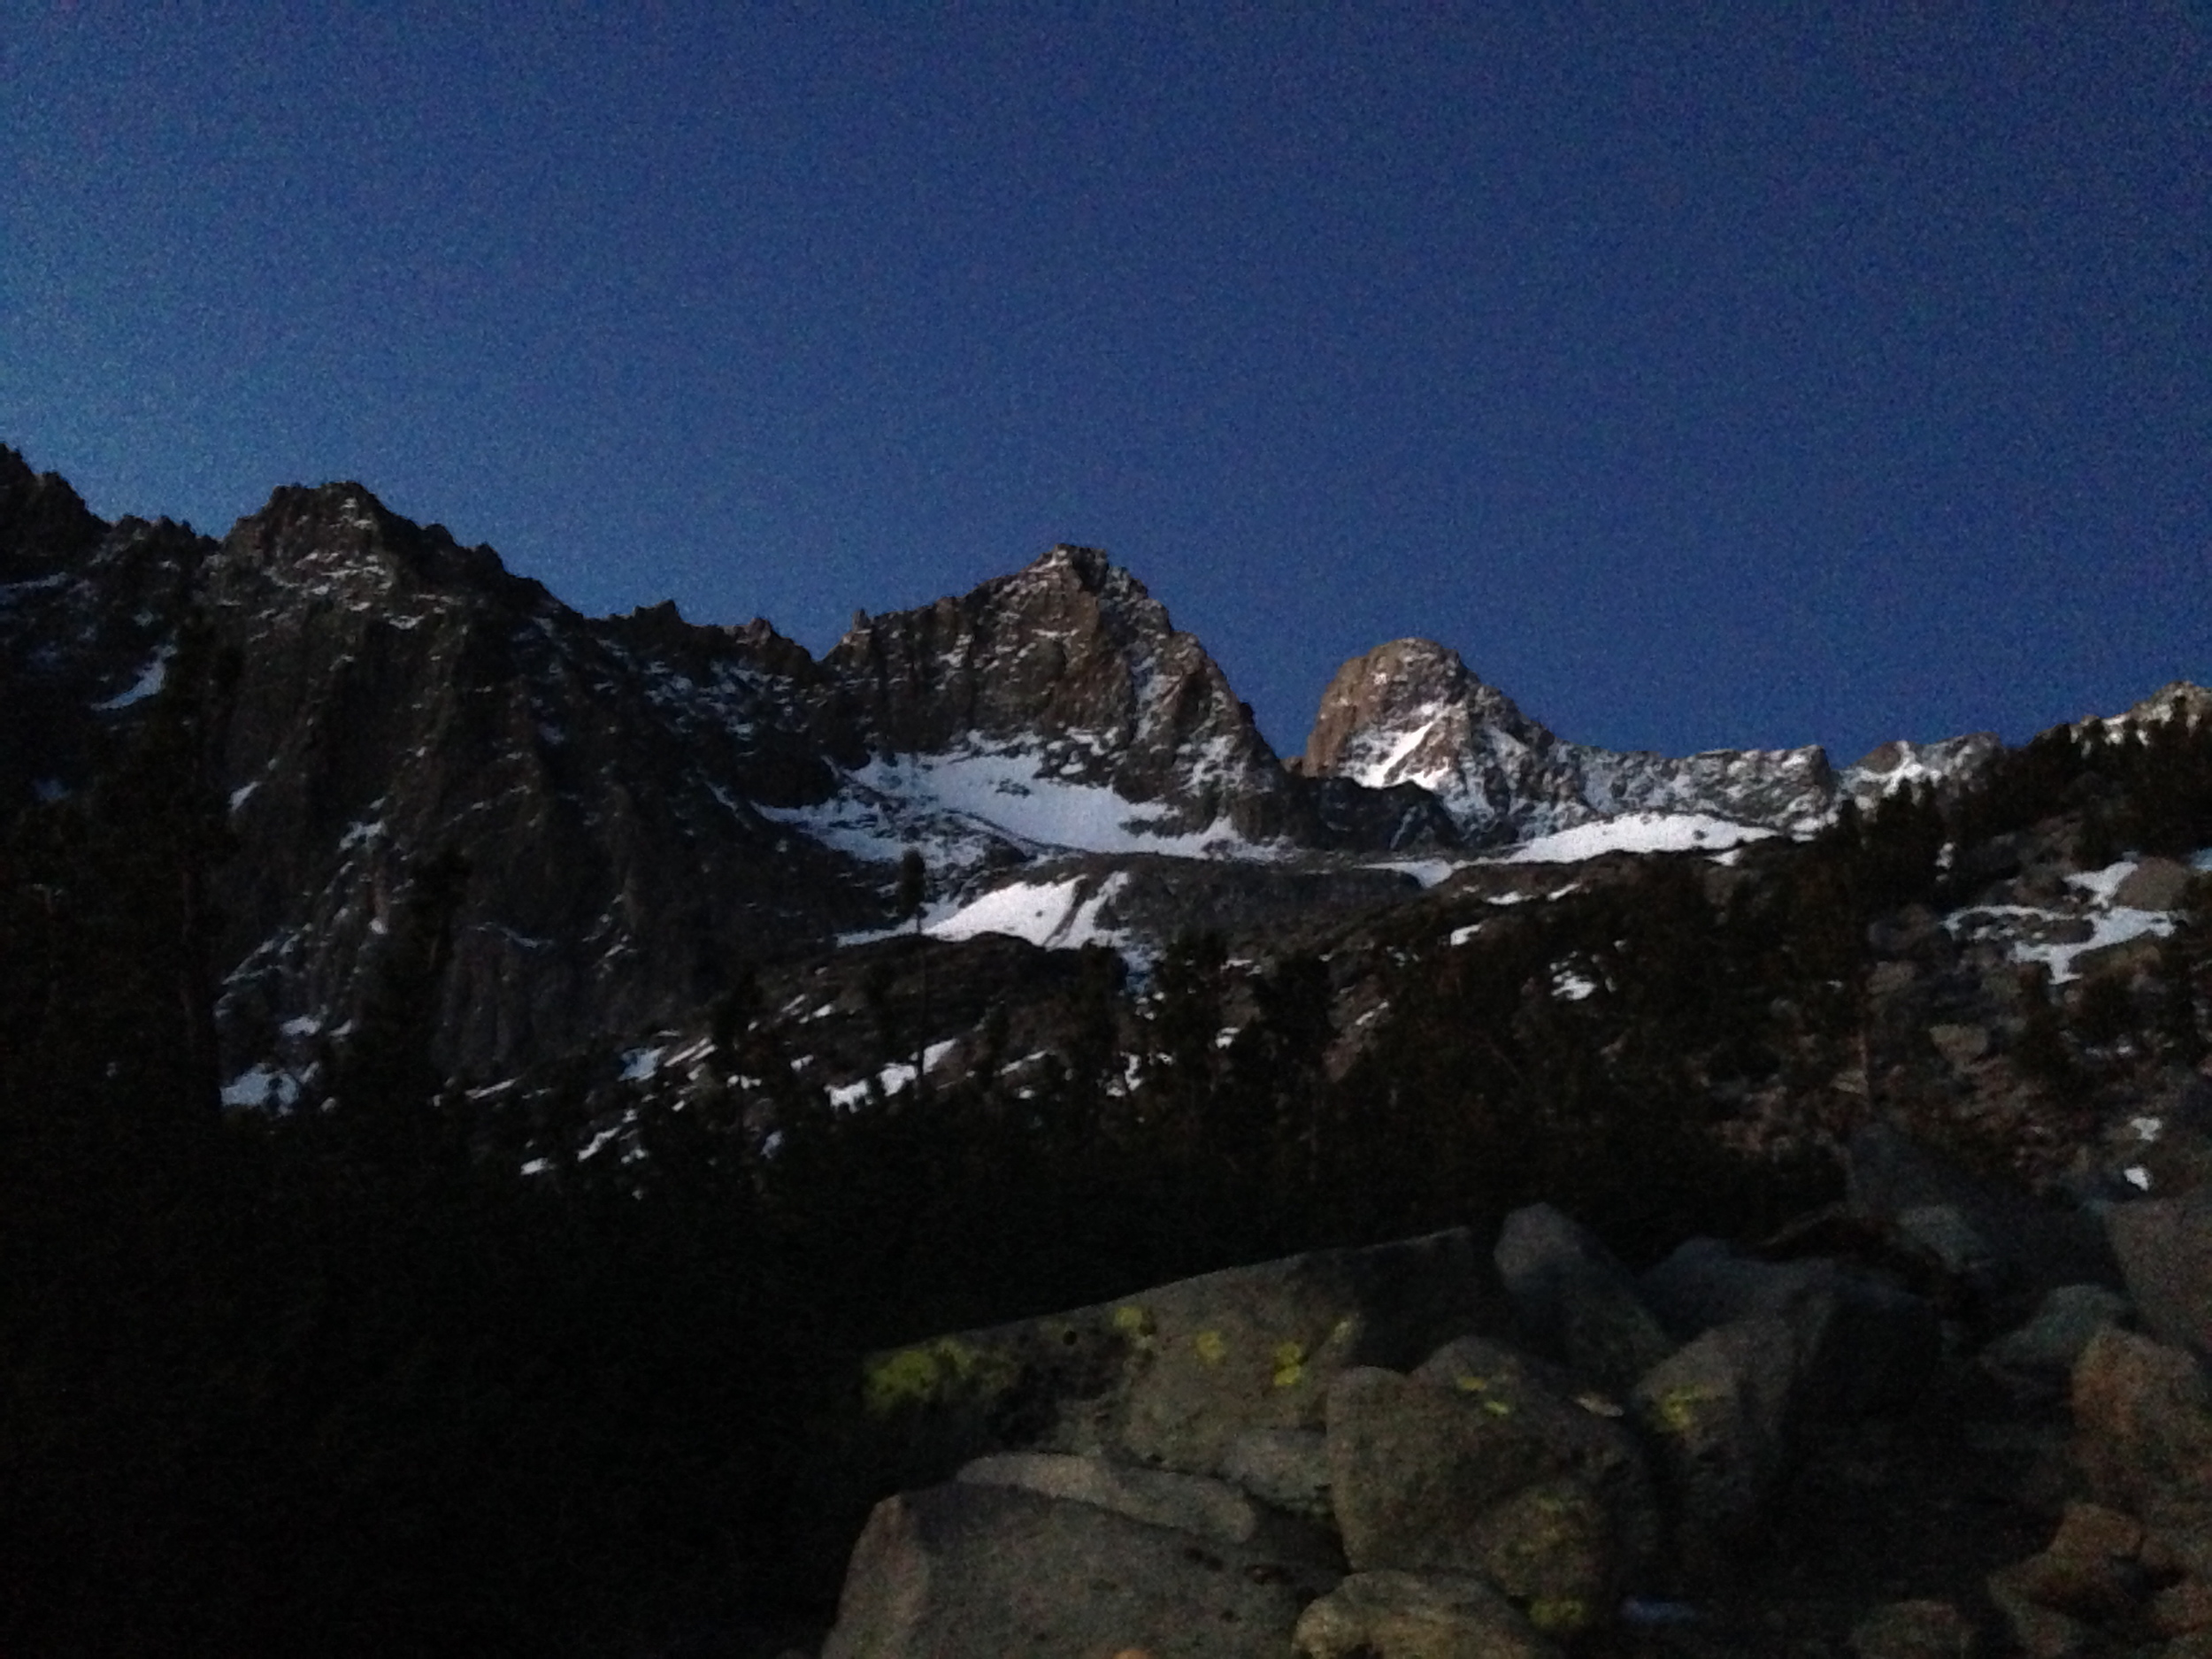 mt sill visible in the upper right of the image. the swiss arete is the left hand skyline.